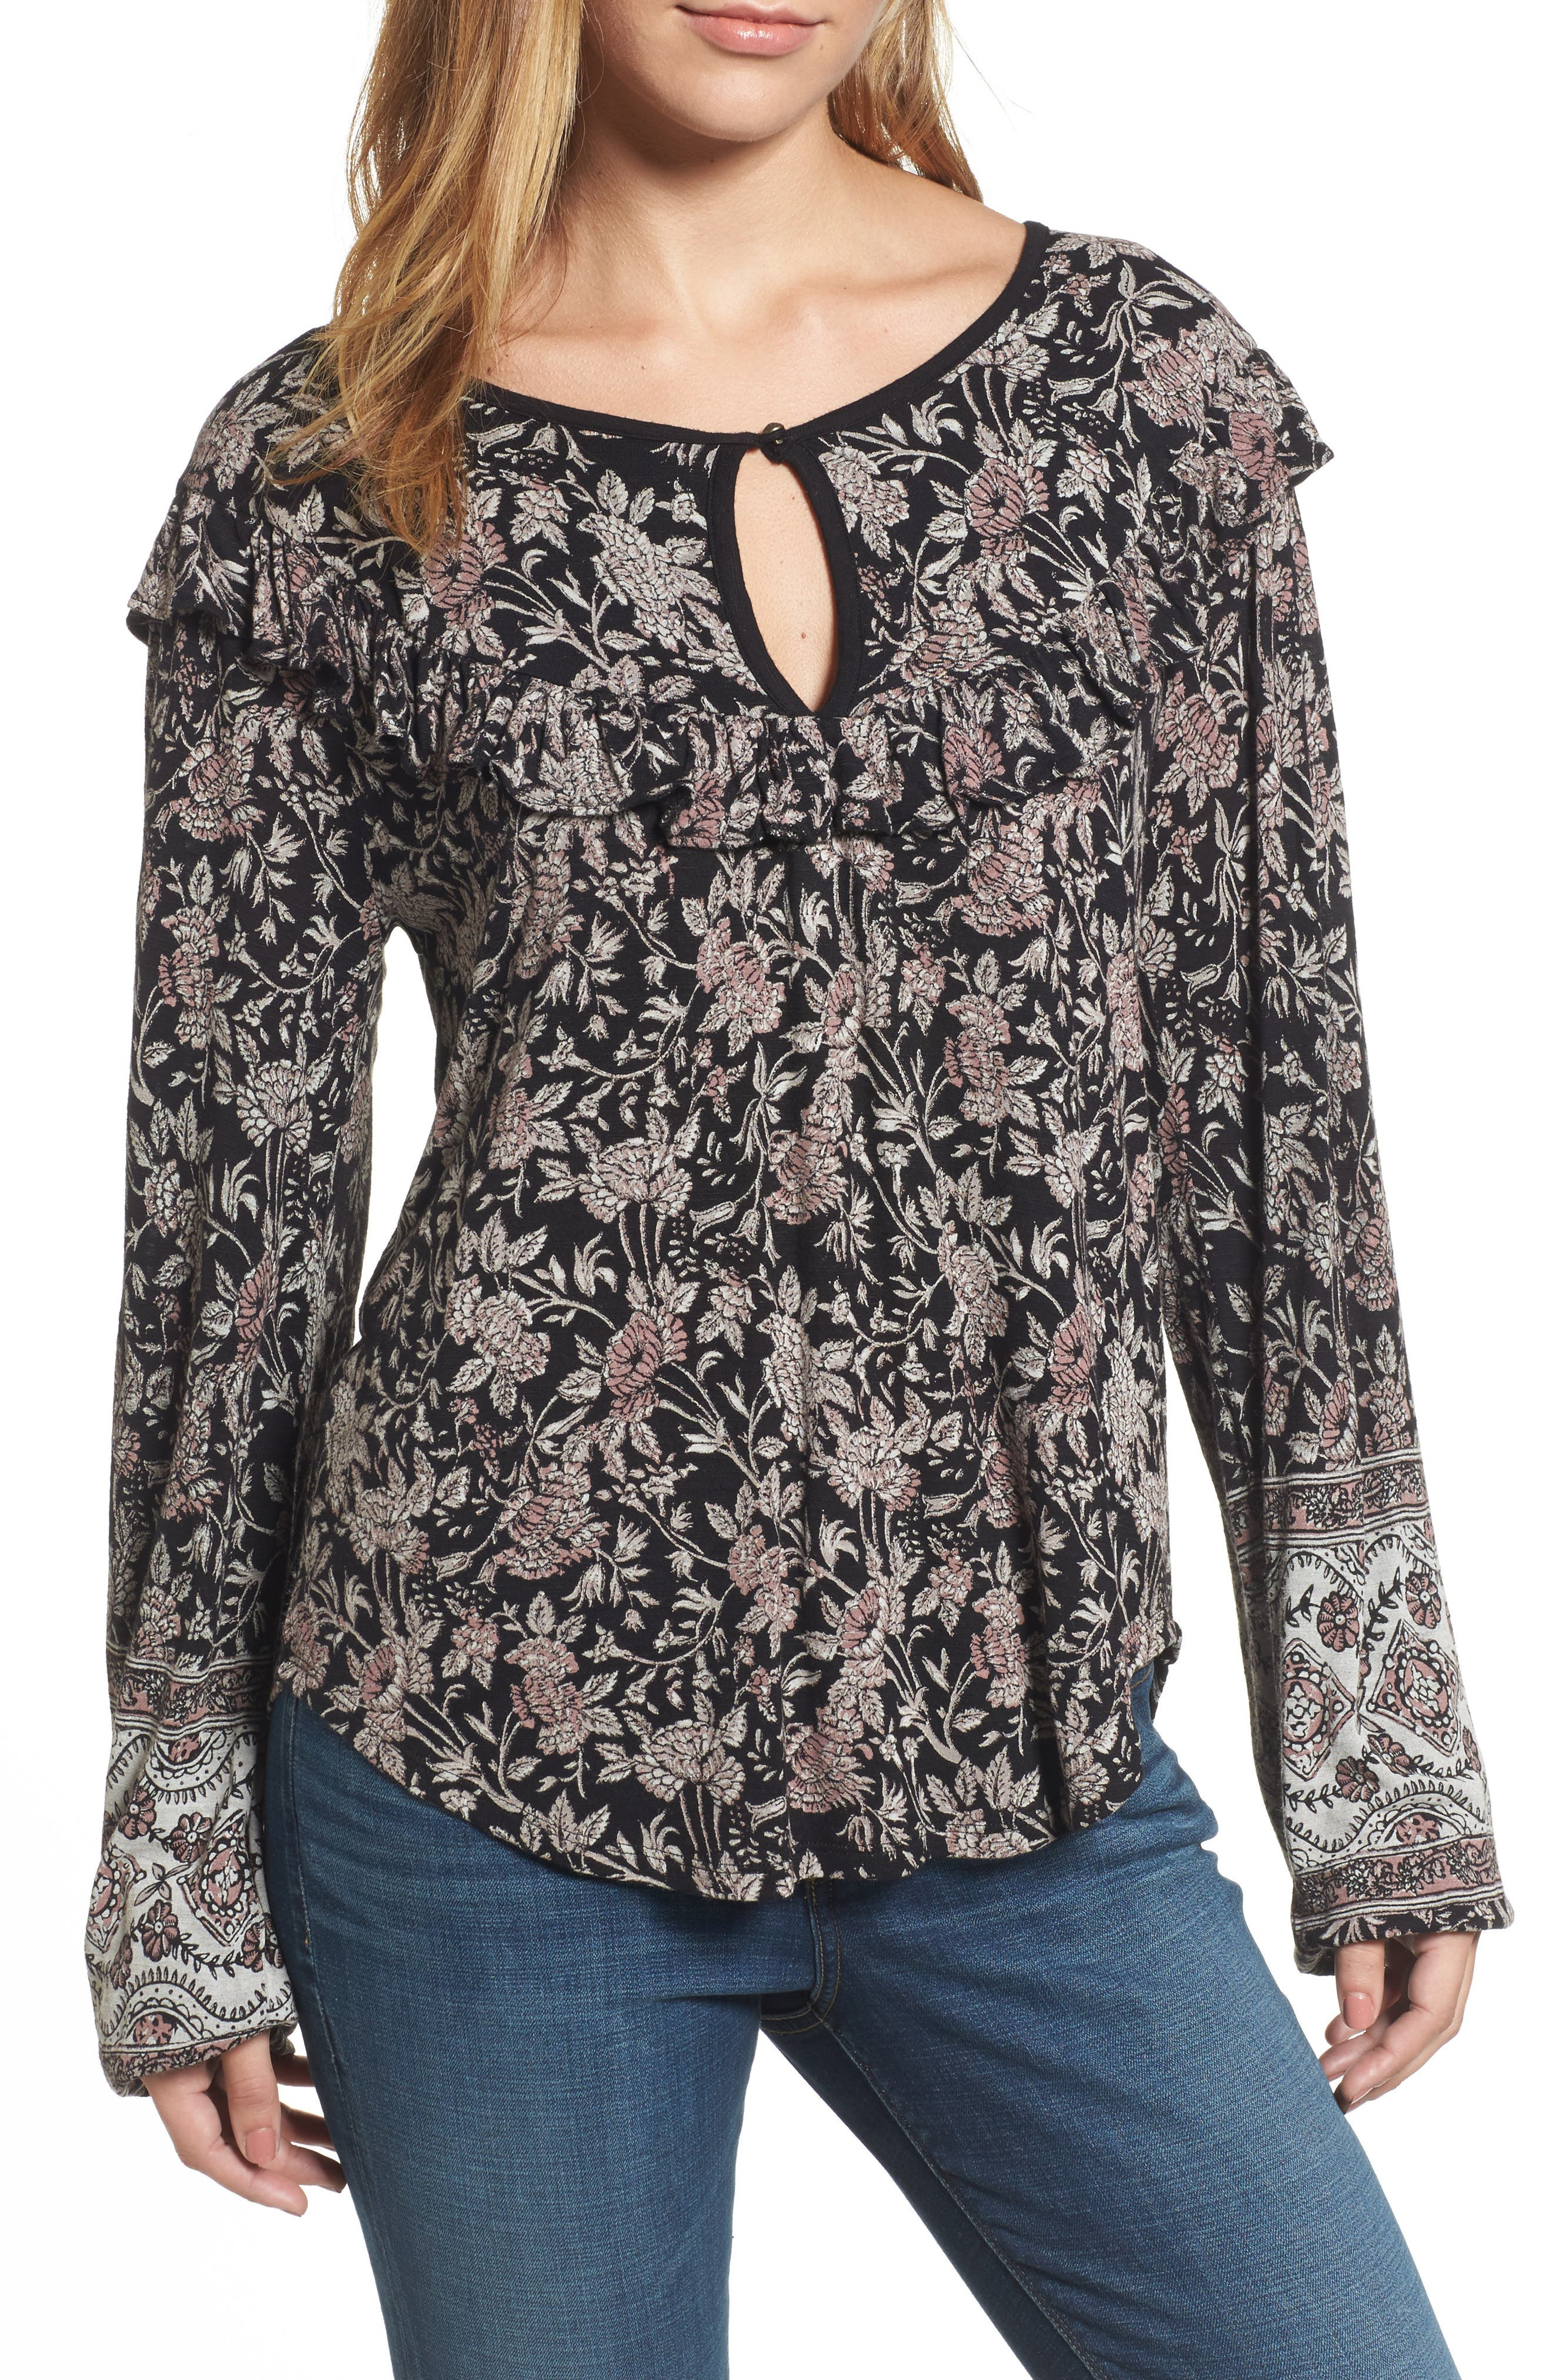 Main Image - Lucky Brand Mixed Floral Ruffle Top